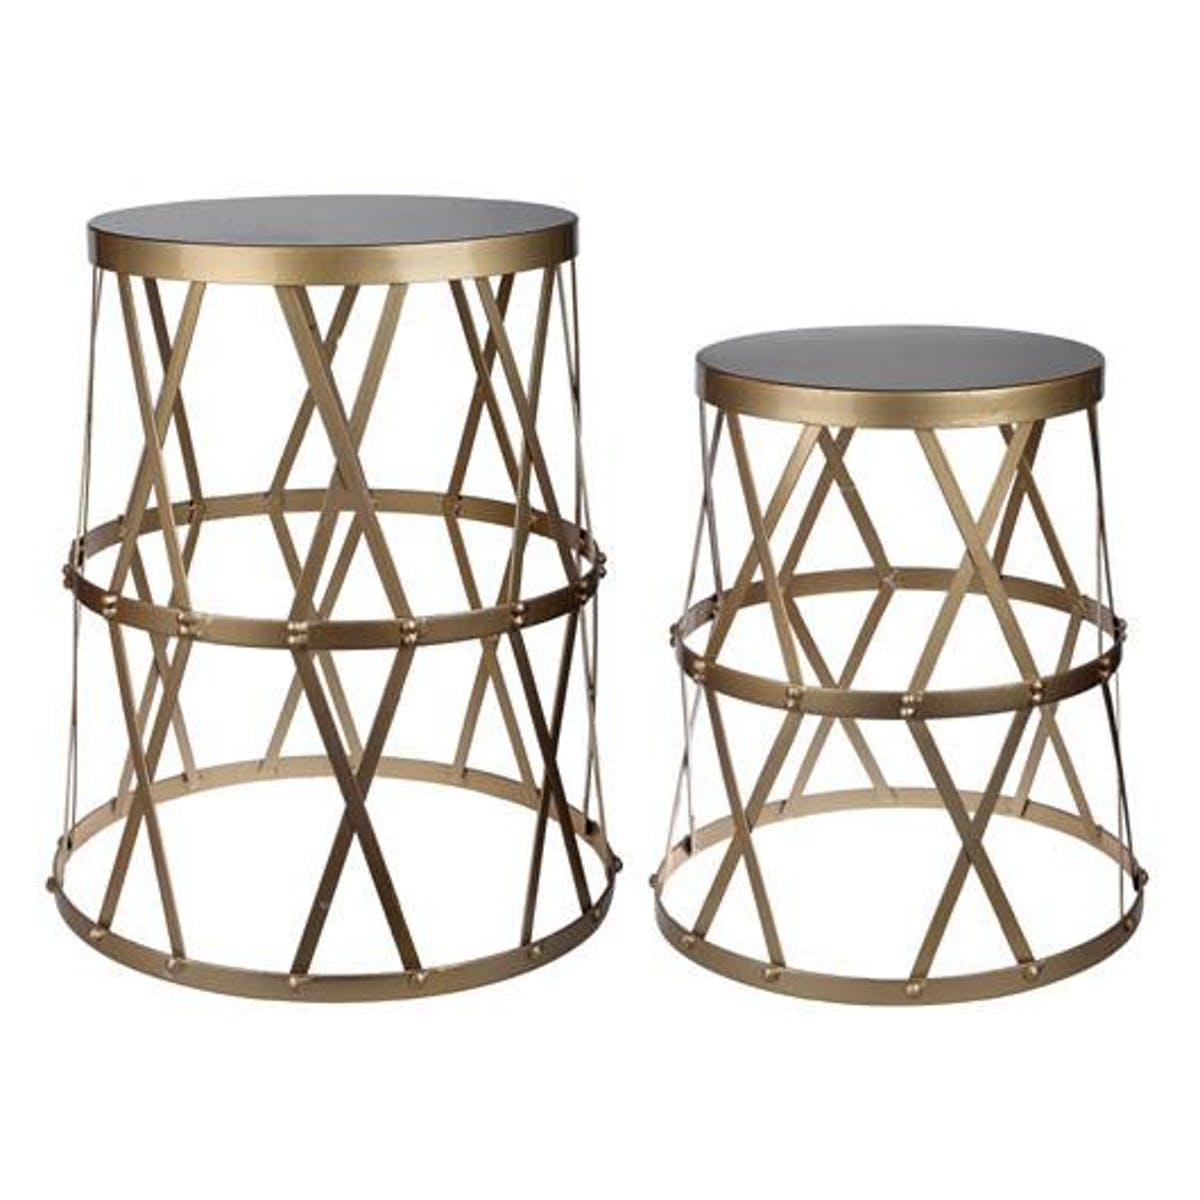 home urban vogue gold accent tables modish table entry for small spaces cement base center cover outdoor front porch bench distressed gray end accents dishes nautical island